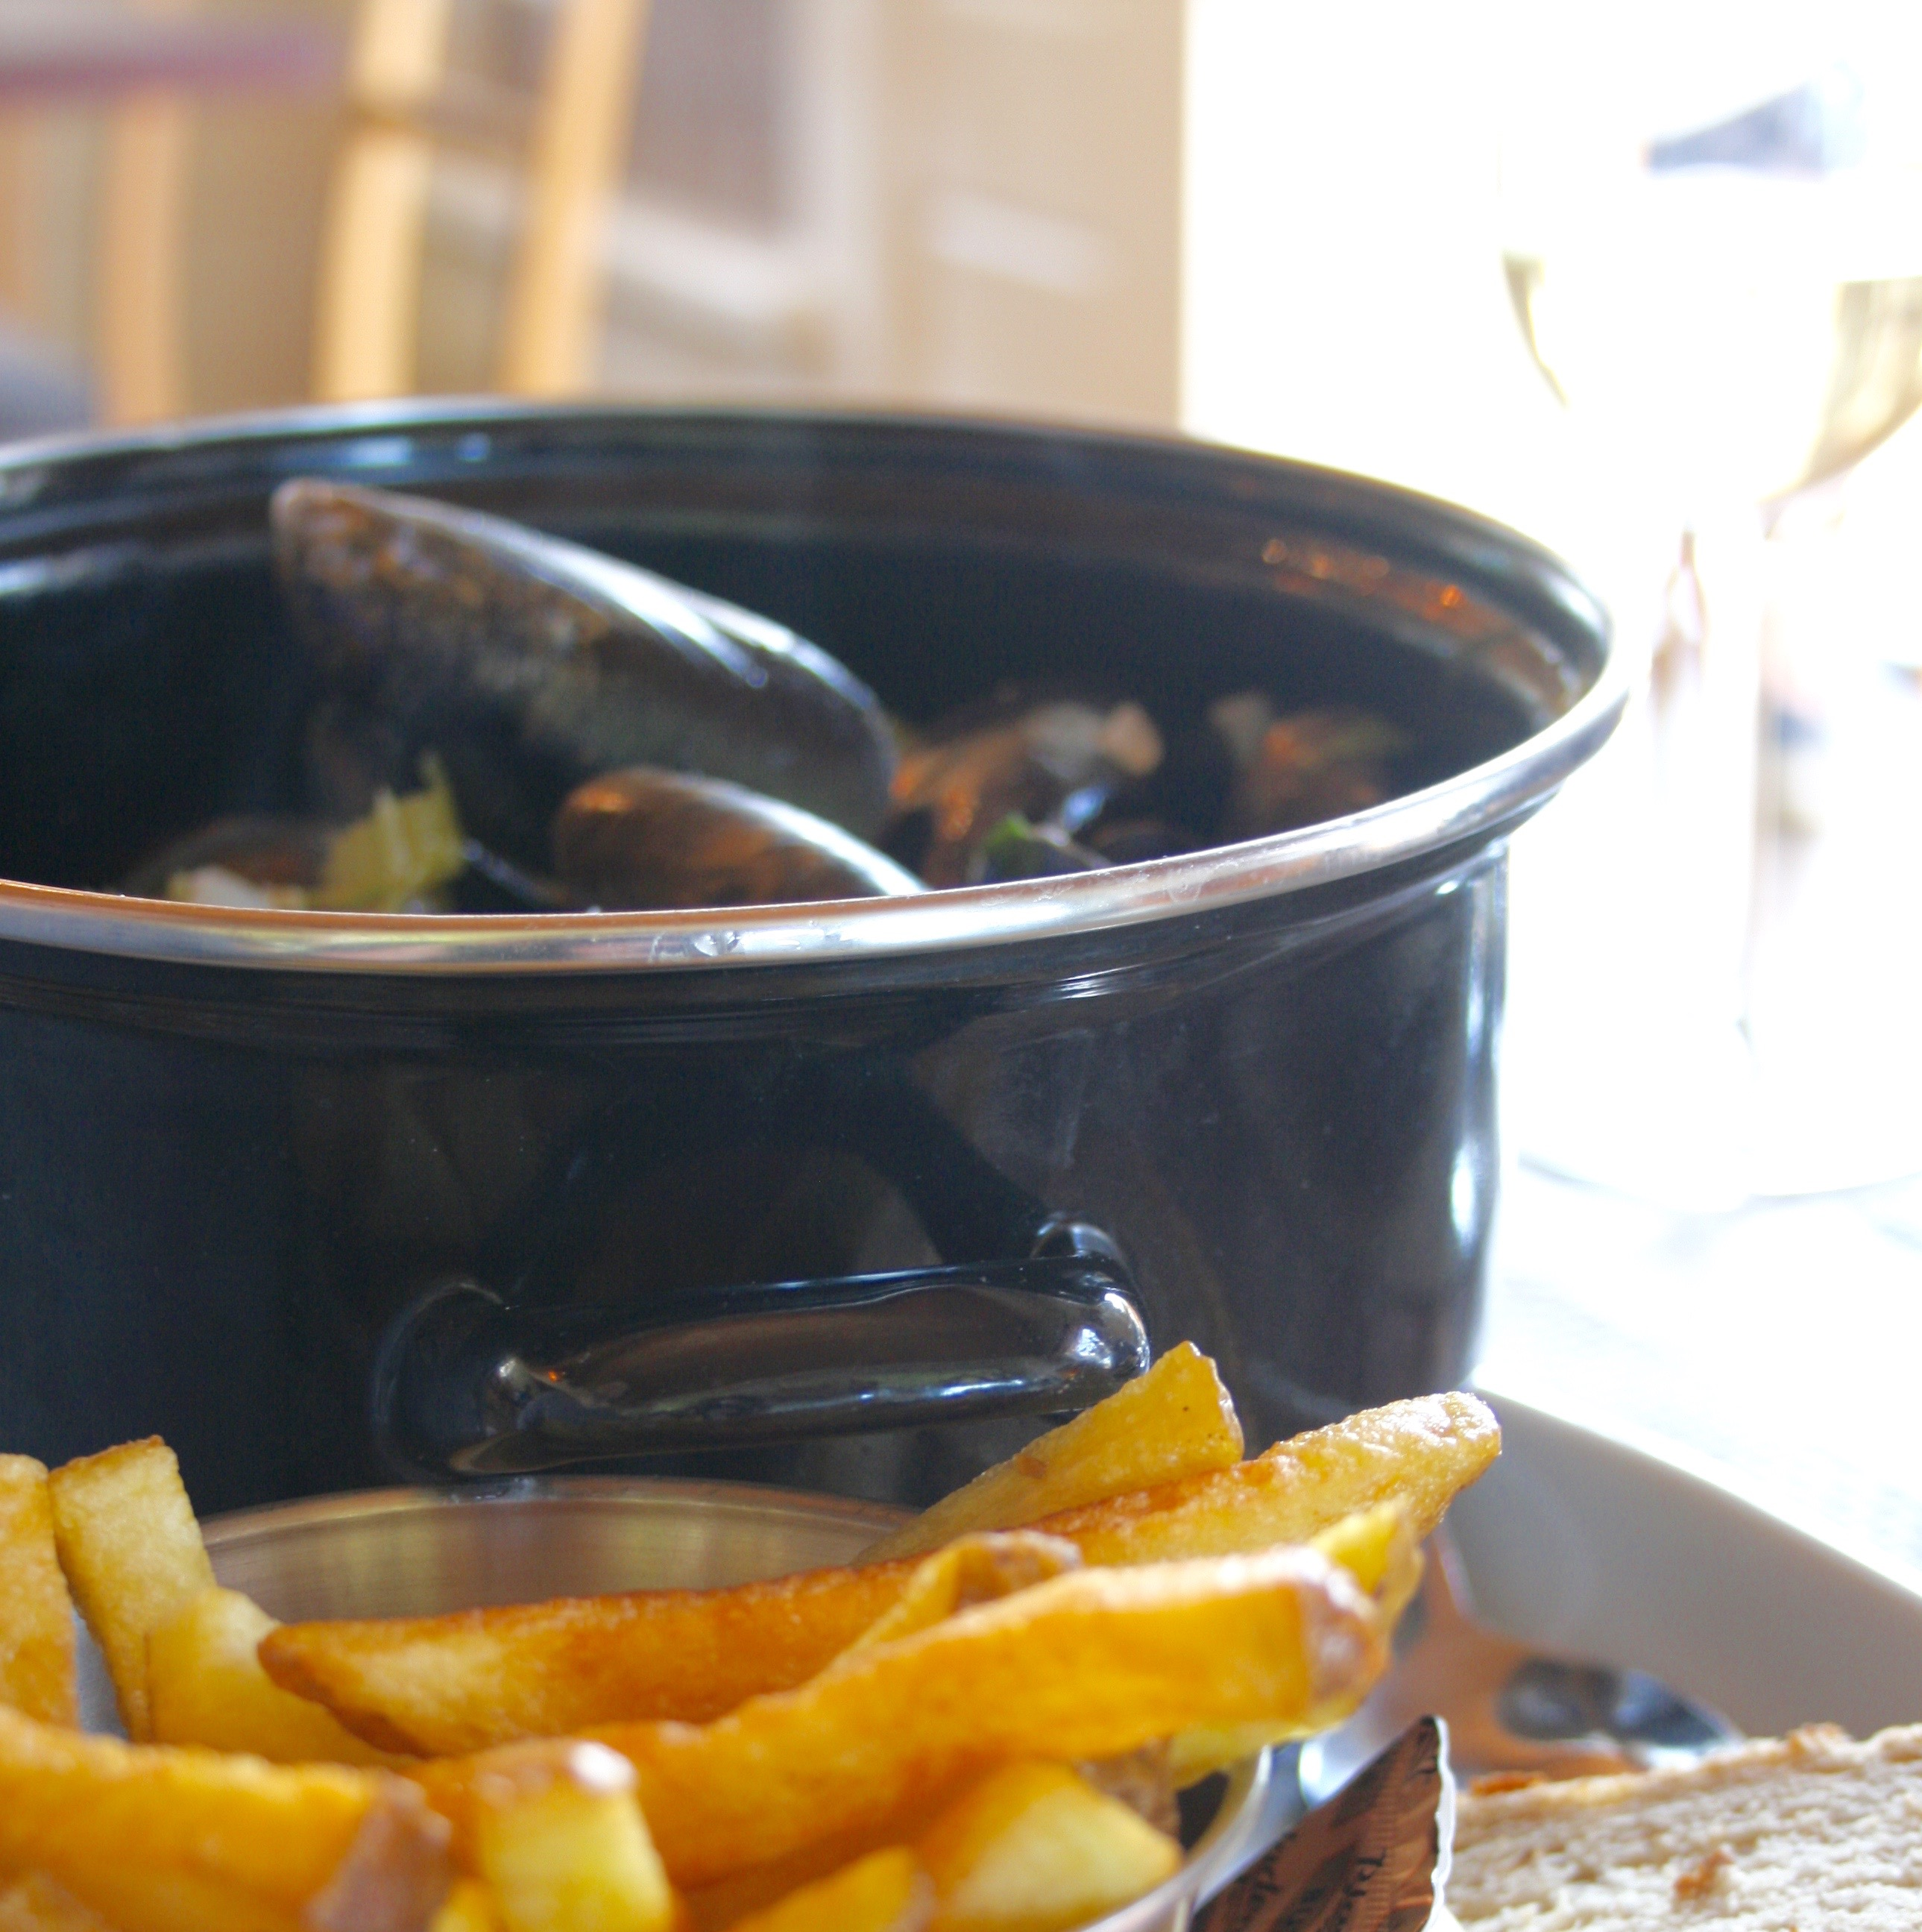 Review of the Deep South Cafe in Parkstone Bay, Poole